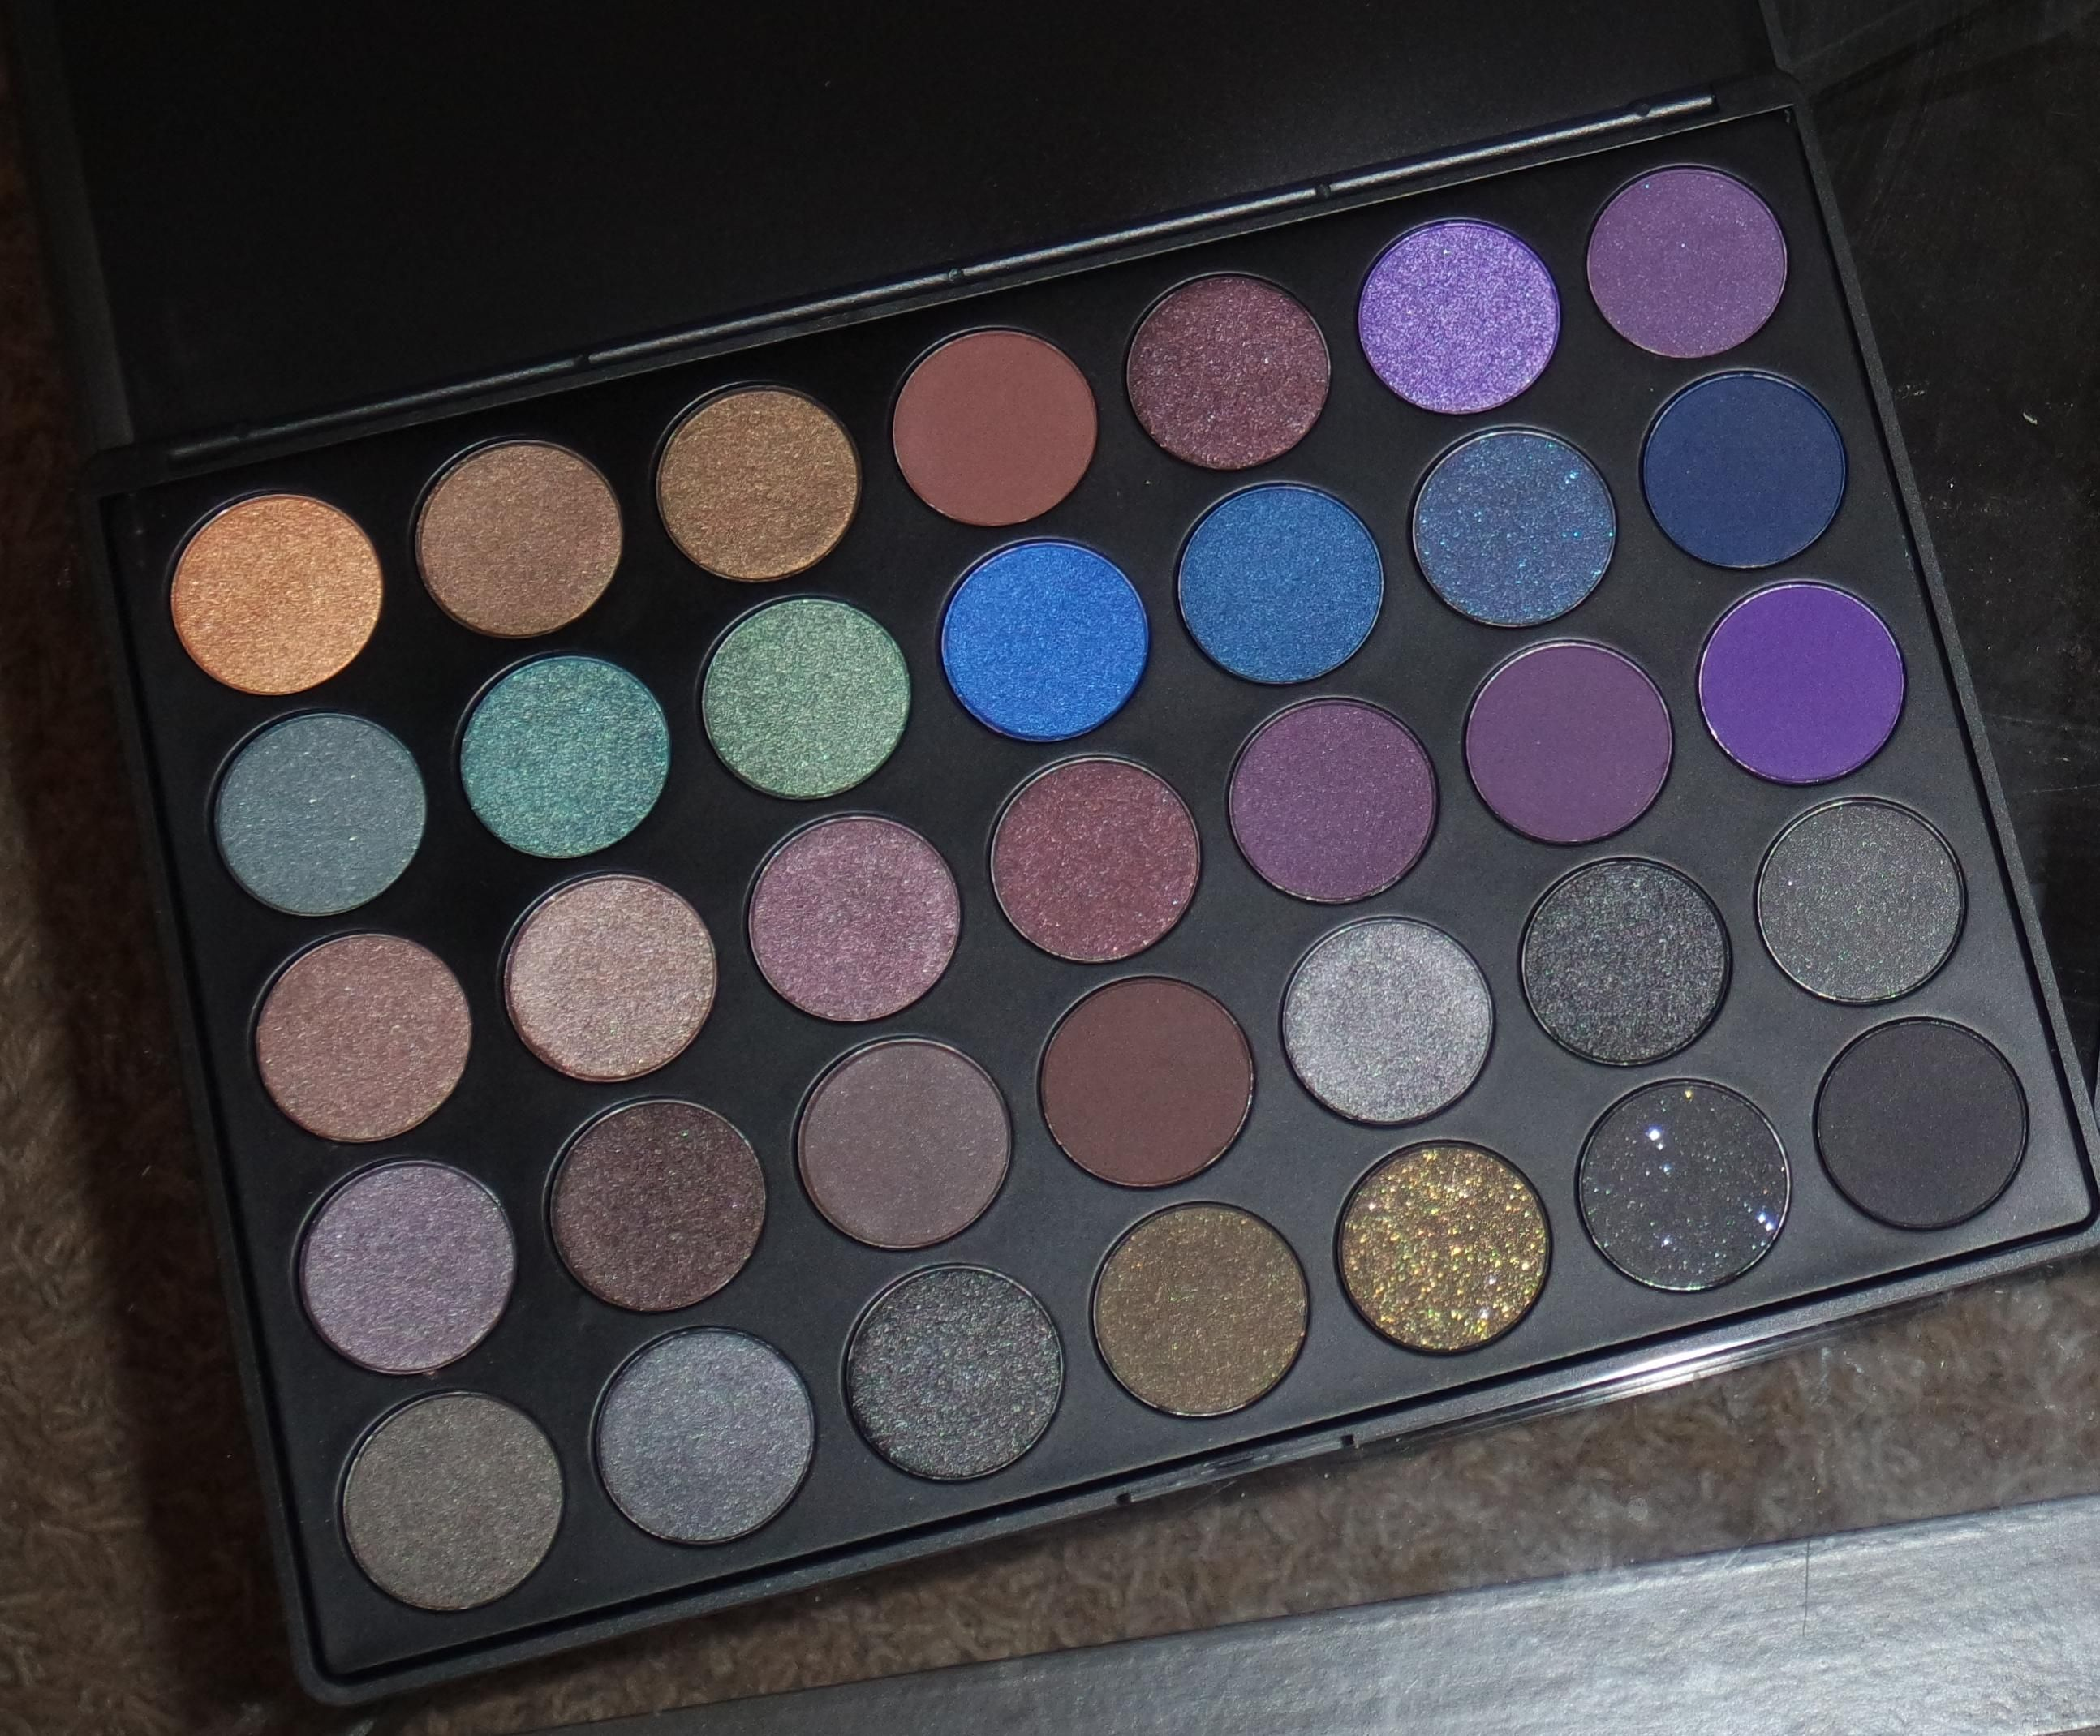 Morphe 35k eyeshadow palette review beauty in bold - Makeup By Myrna Beauty Blog Morphe Brushes 35d 35 Color Dark Smoky Palette